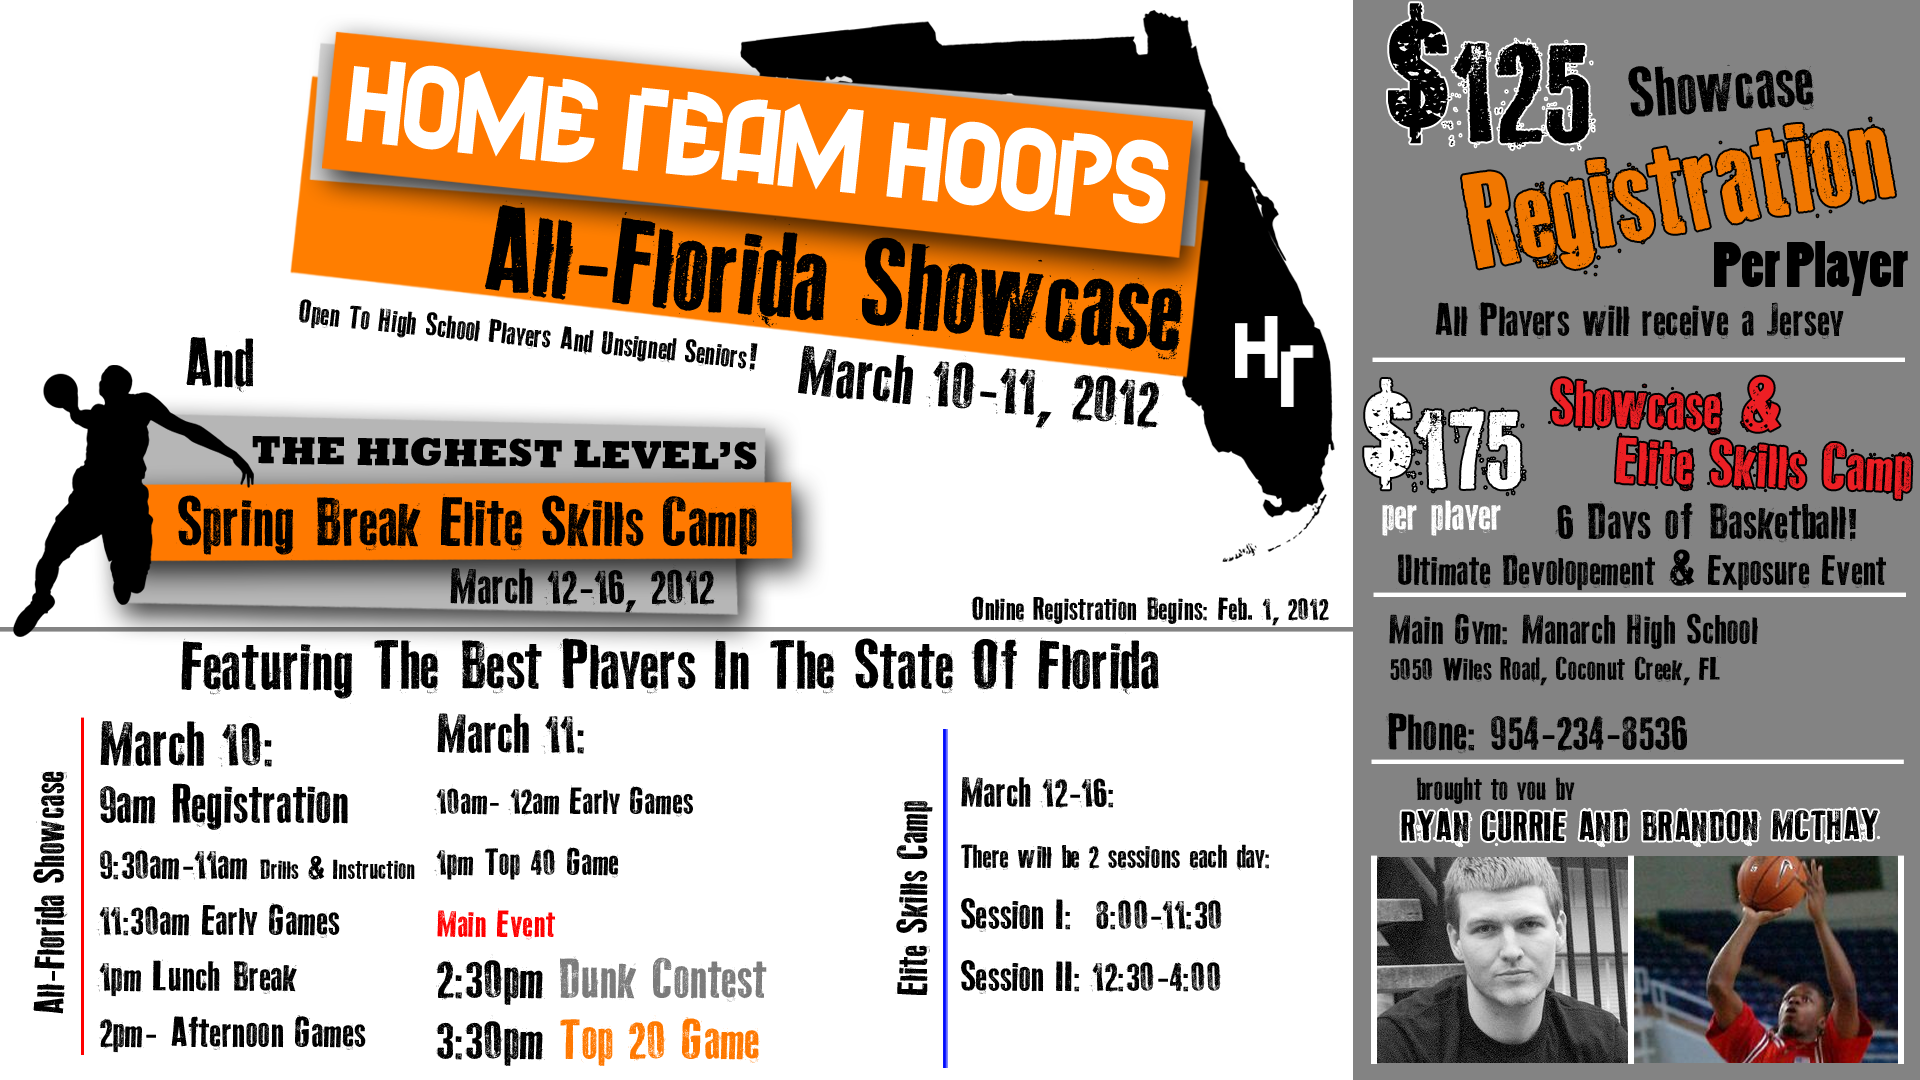 2012 All-Florida Showcase presented by Home Team Hoops